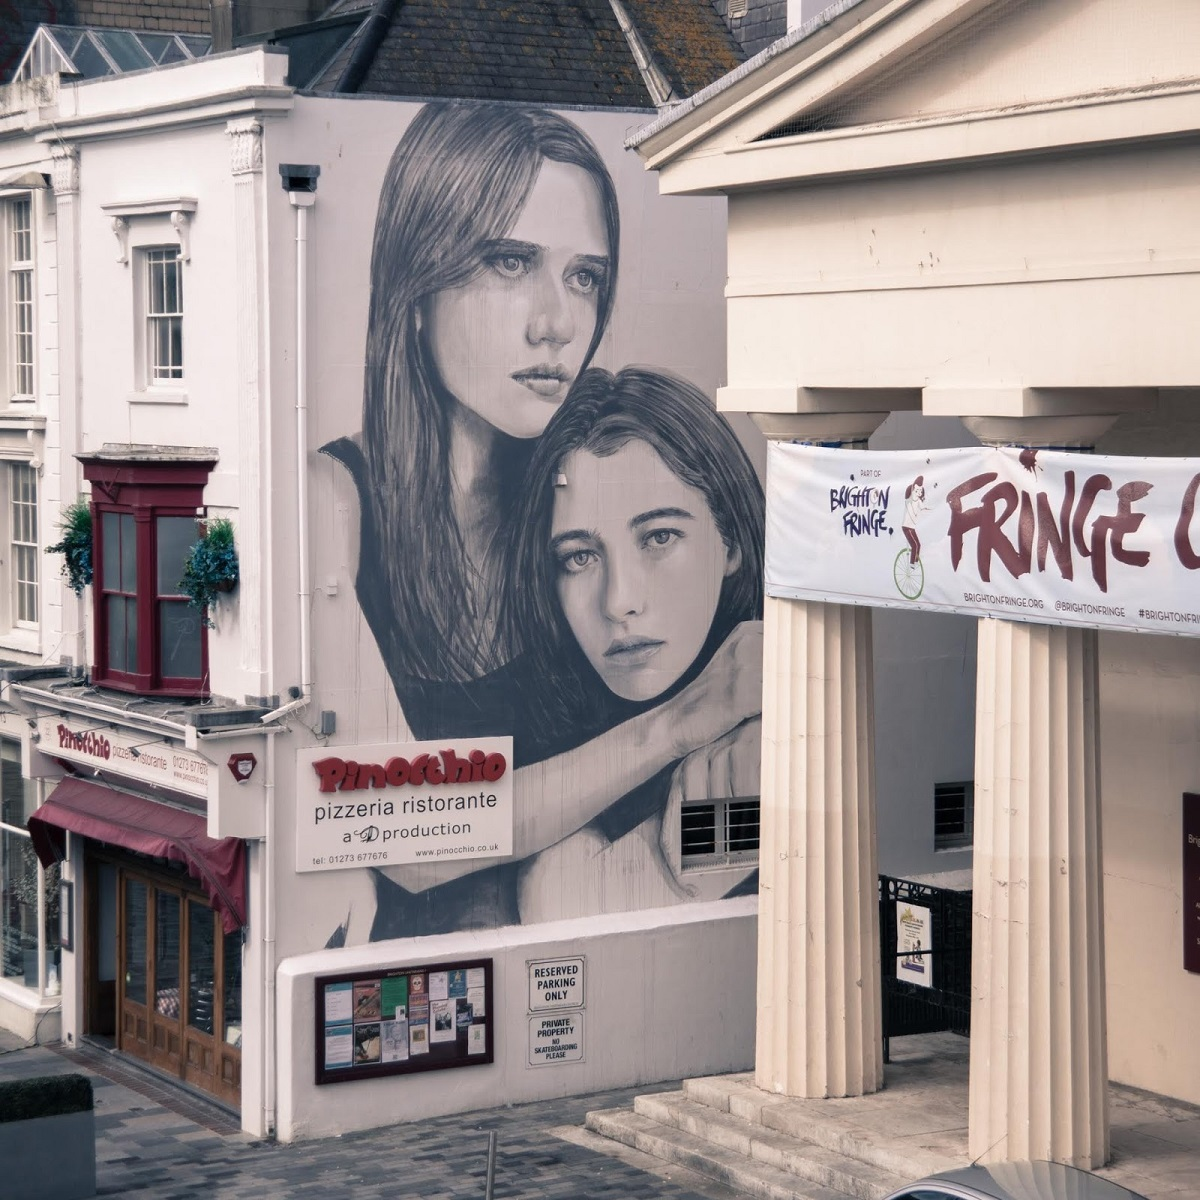 rone-new-mural-in-brighton-uk-06